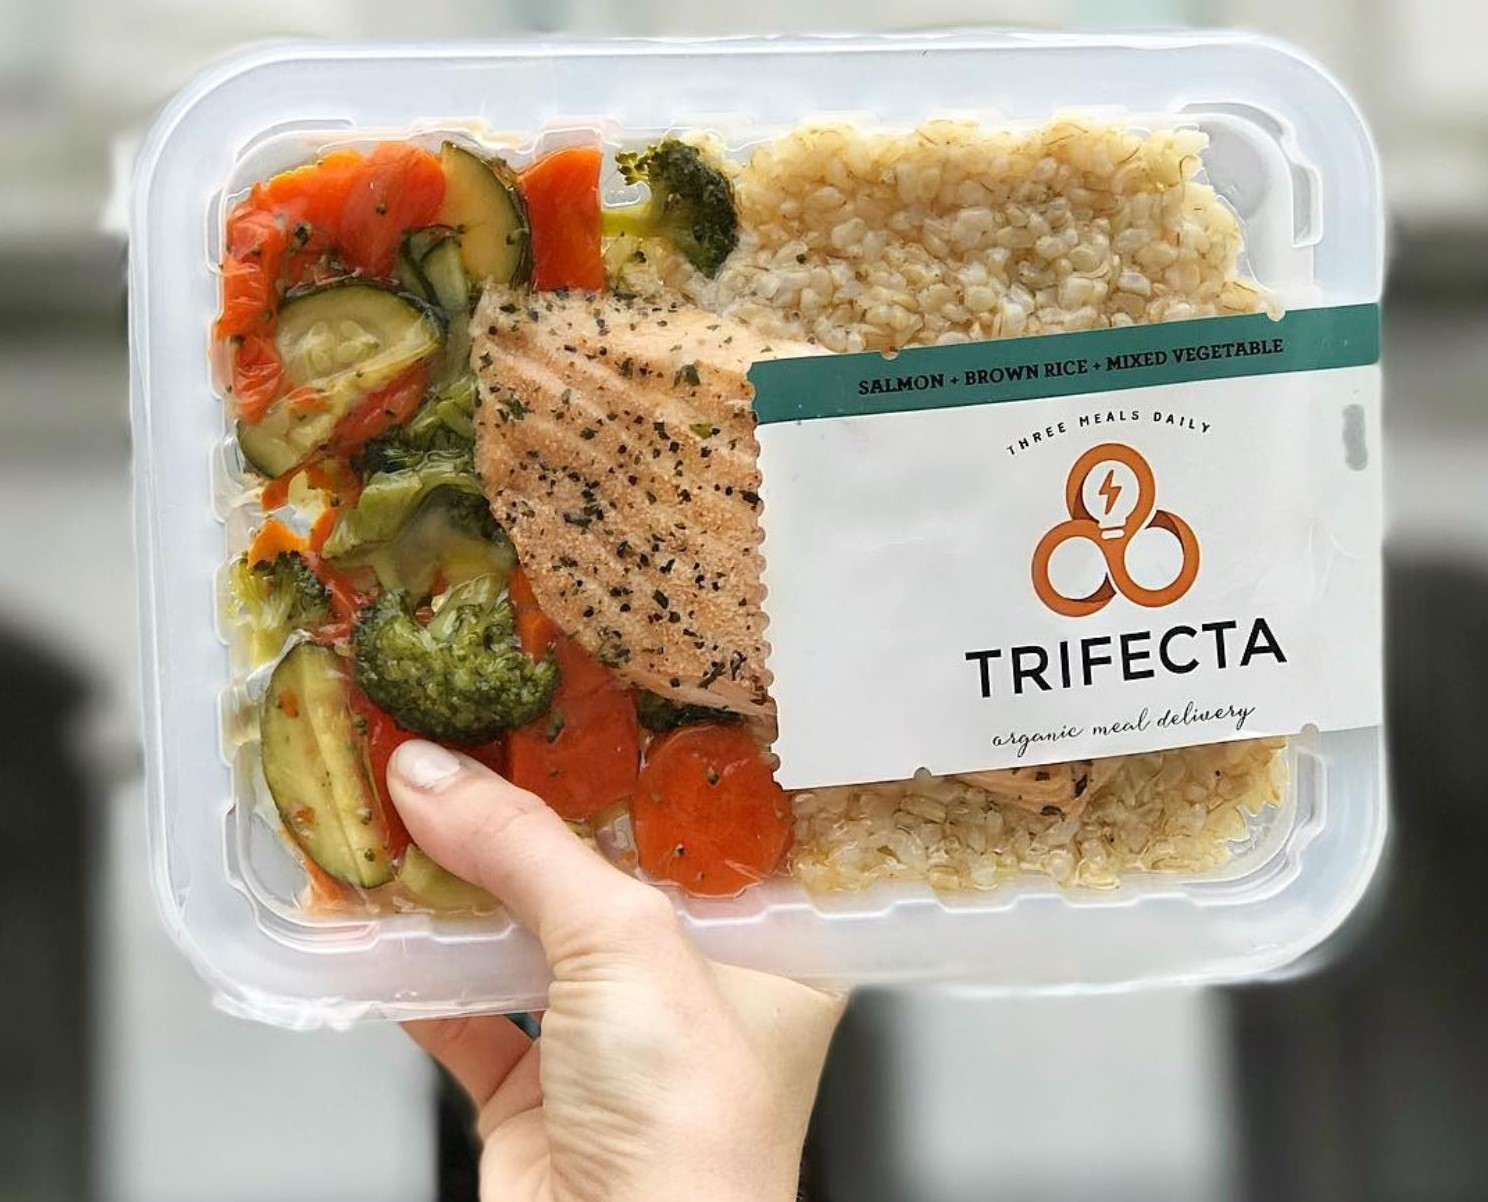 trifecta healthy meal delivery salmon brown rice